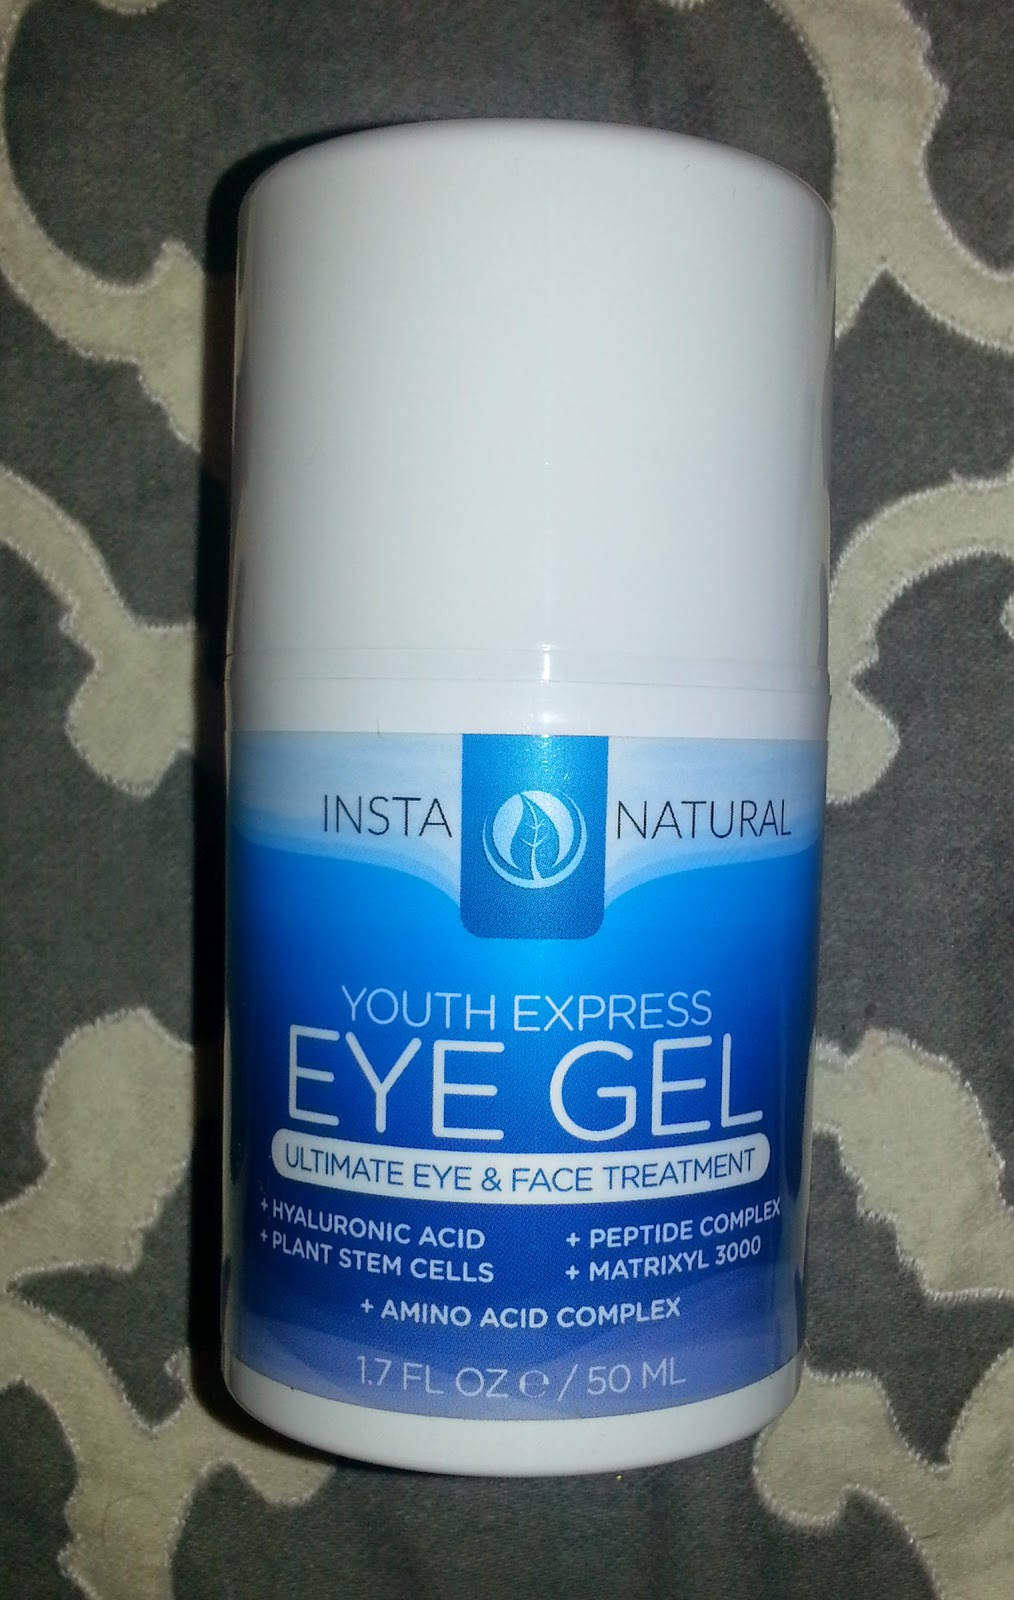 Insta Natural Youth Express Eye Gel